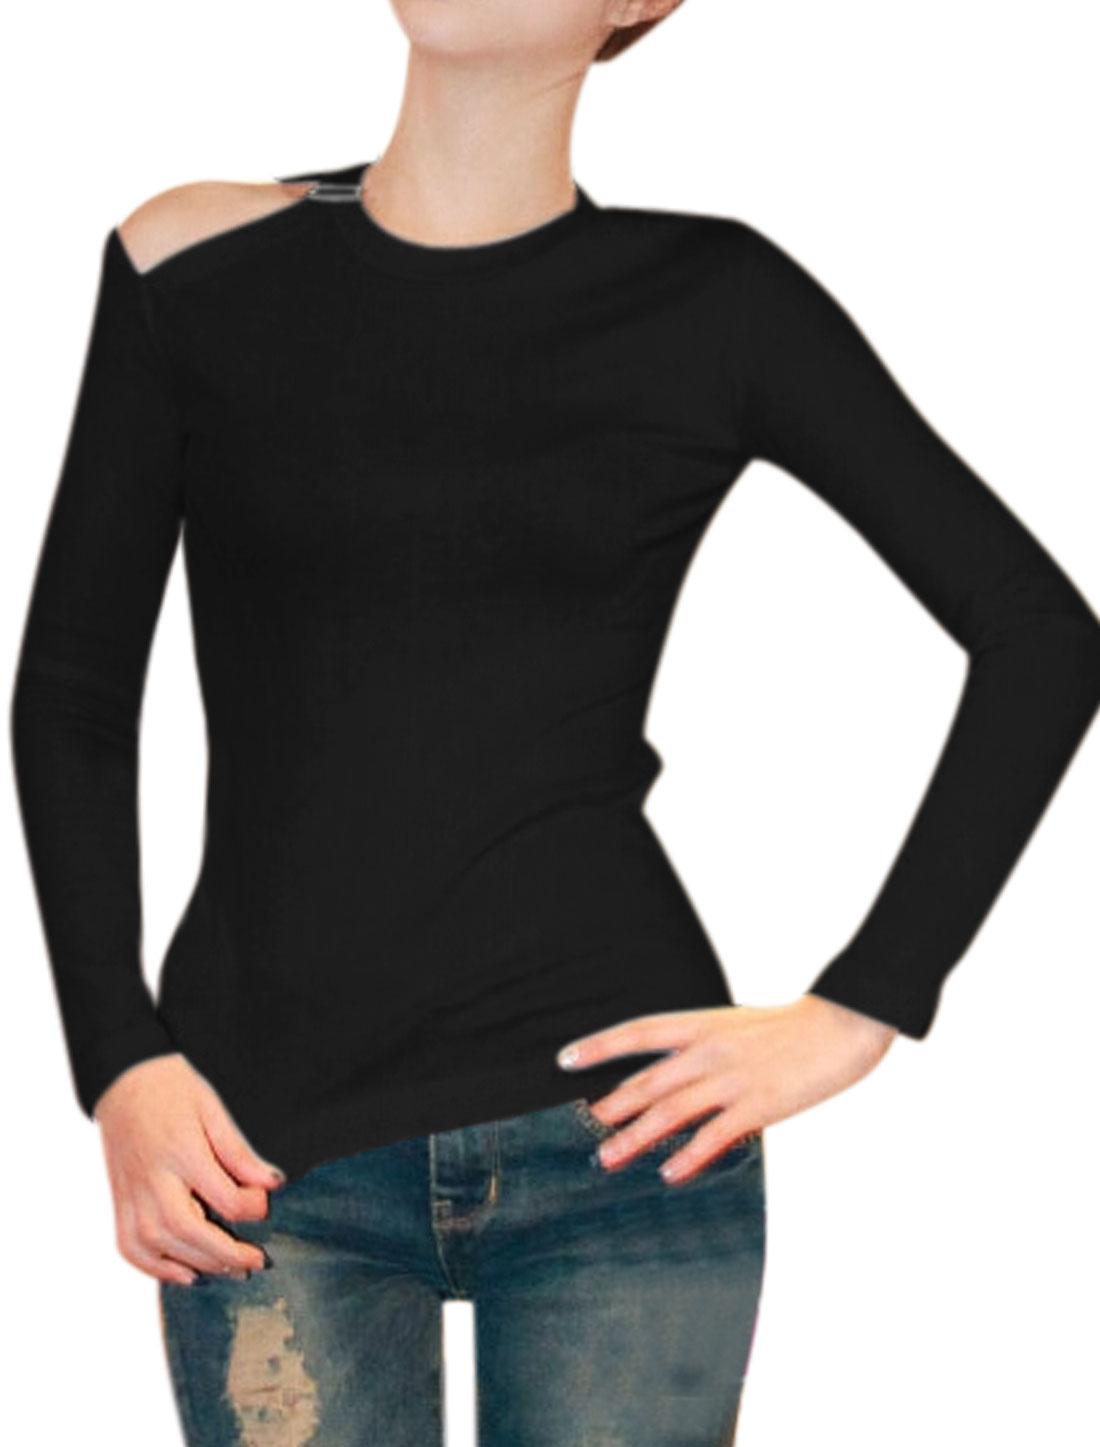 Women Cut Out Shoulder Buckle Decor Crew Neck Slim Fit Top Black XS